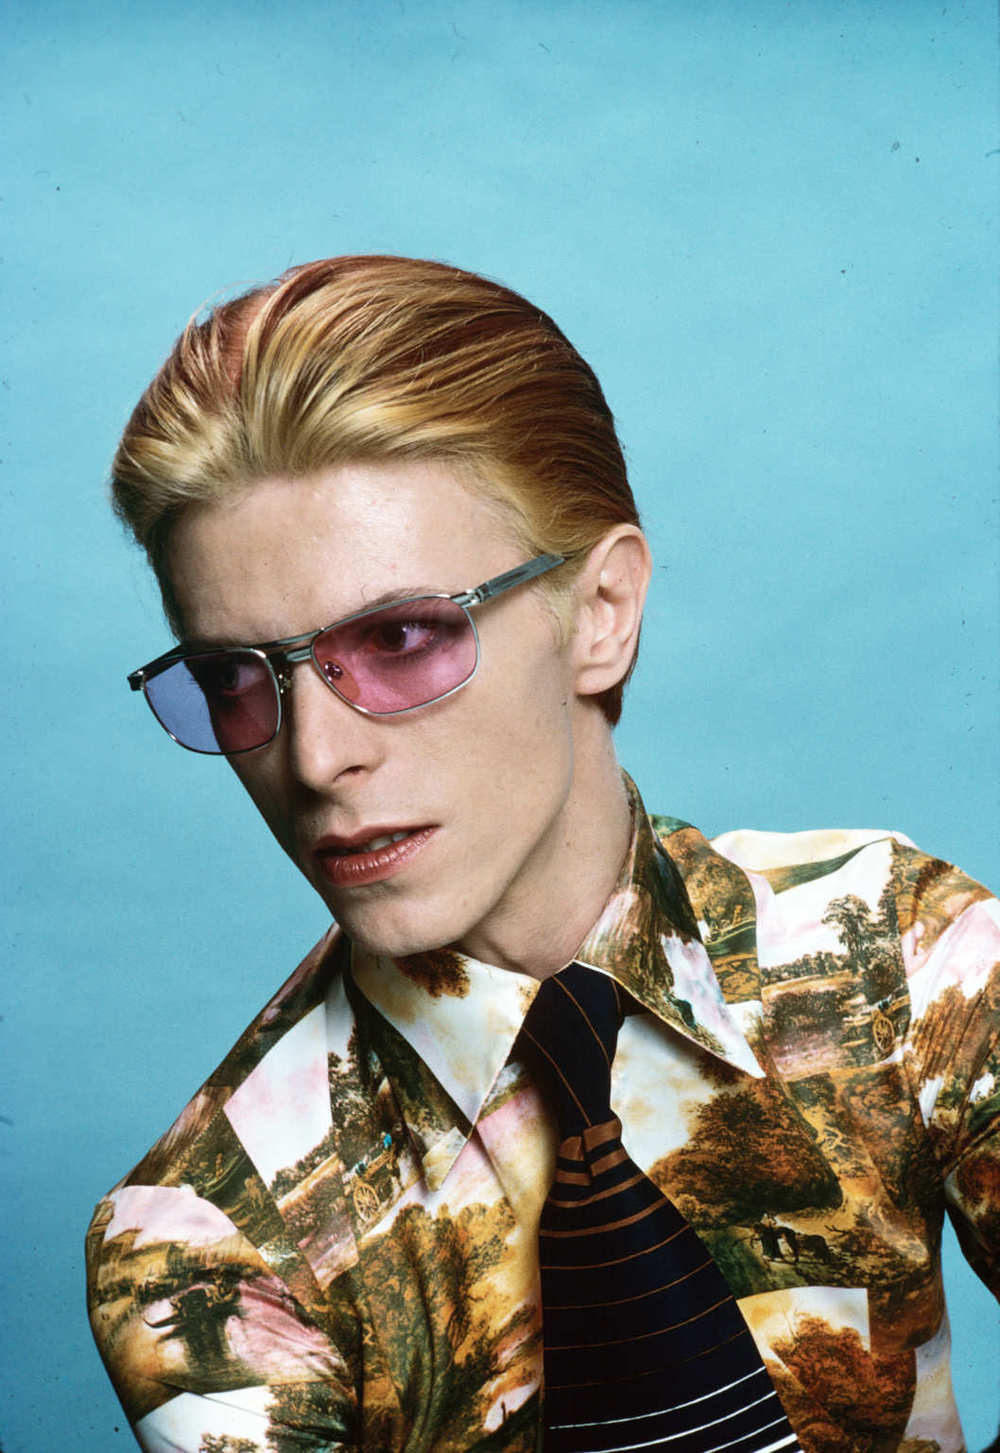 55 Rare Photographs of David Bowie You May Not Have Seen